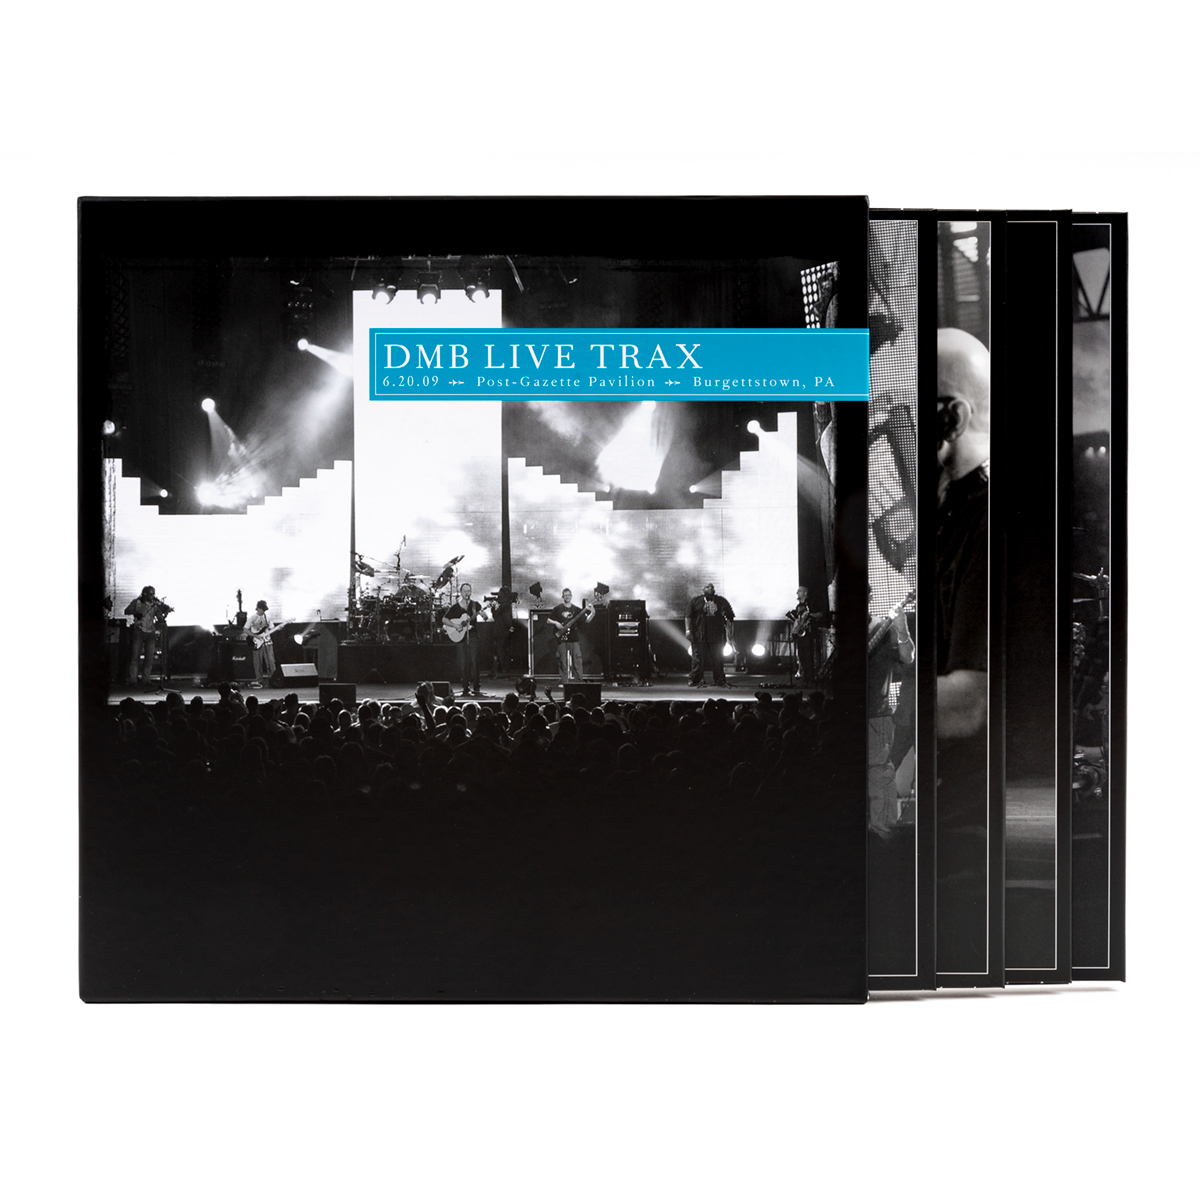 DMB Live Trax Vol. 35 Vinyl: Post-Gazette Pavilion 5-LP Vinyl